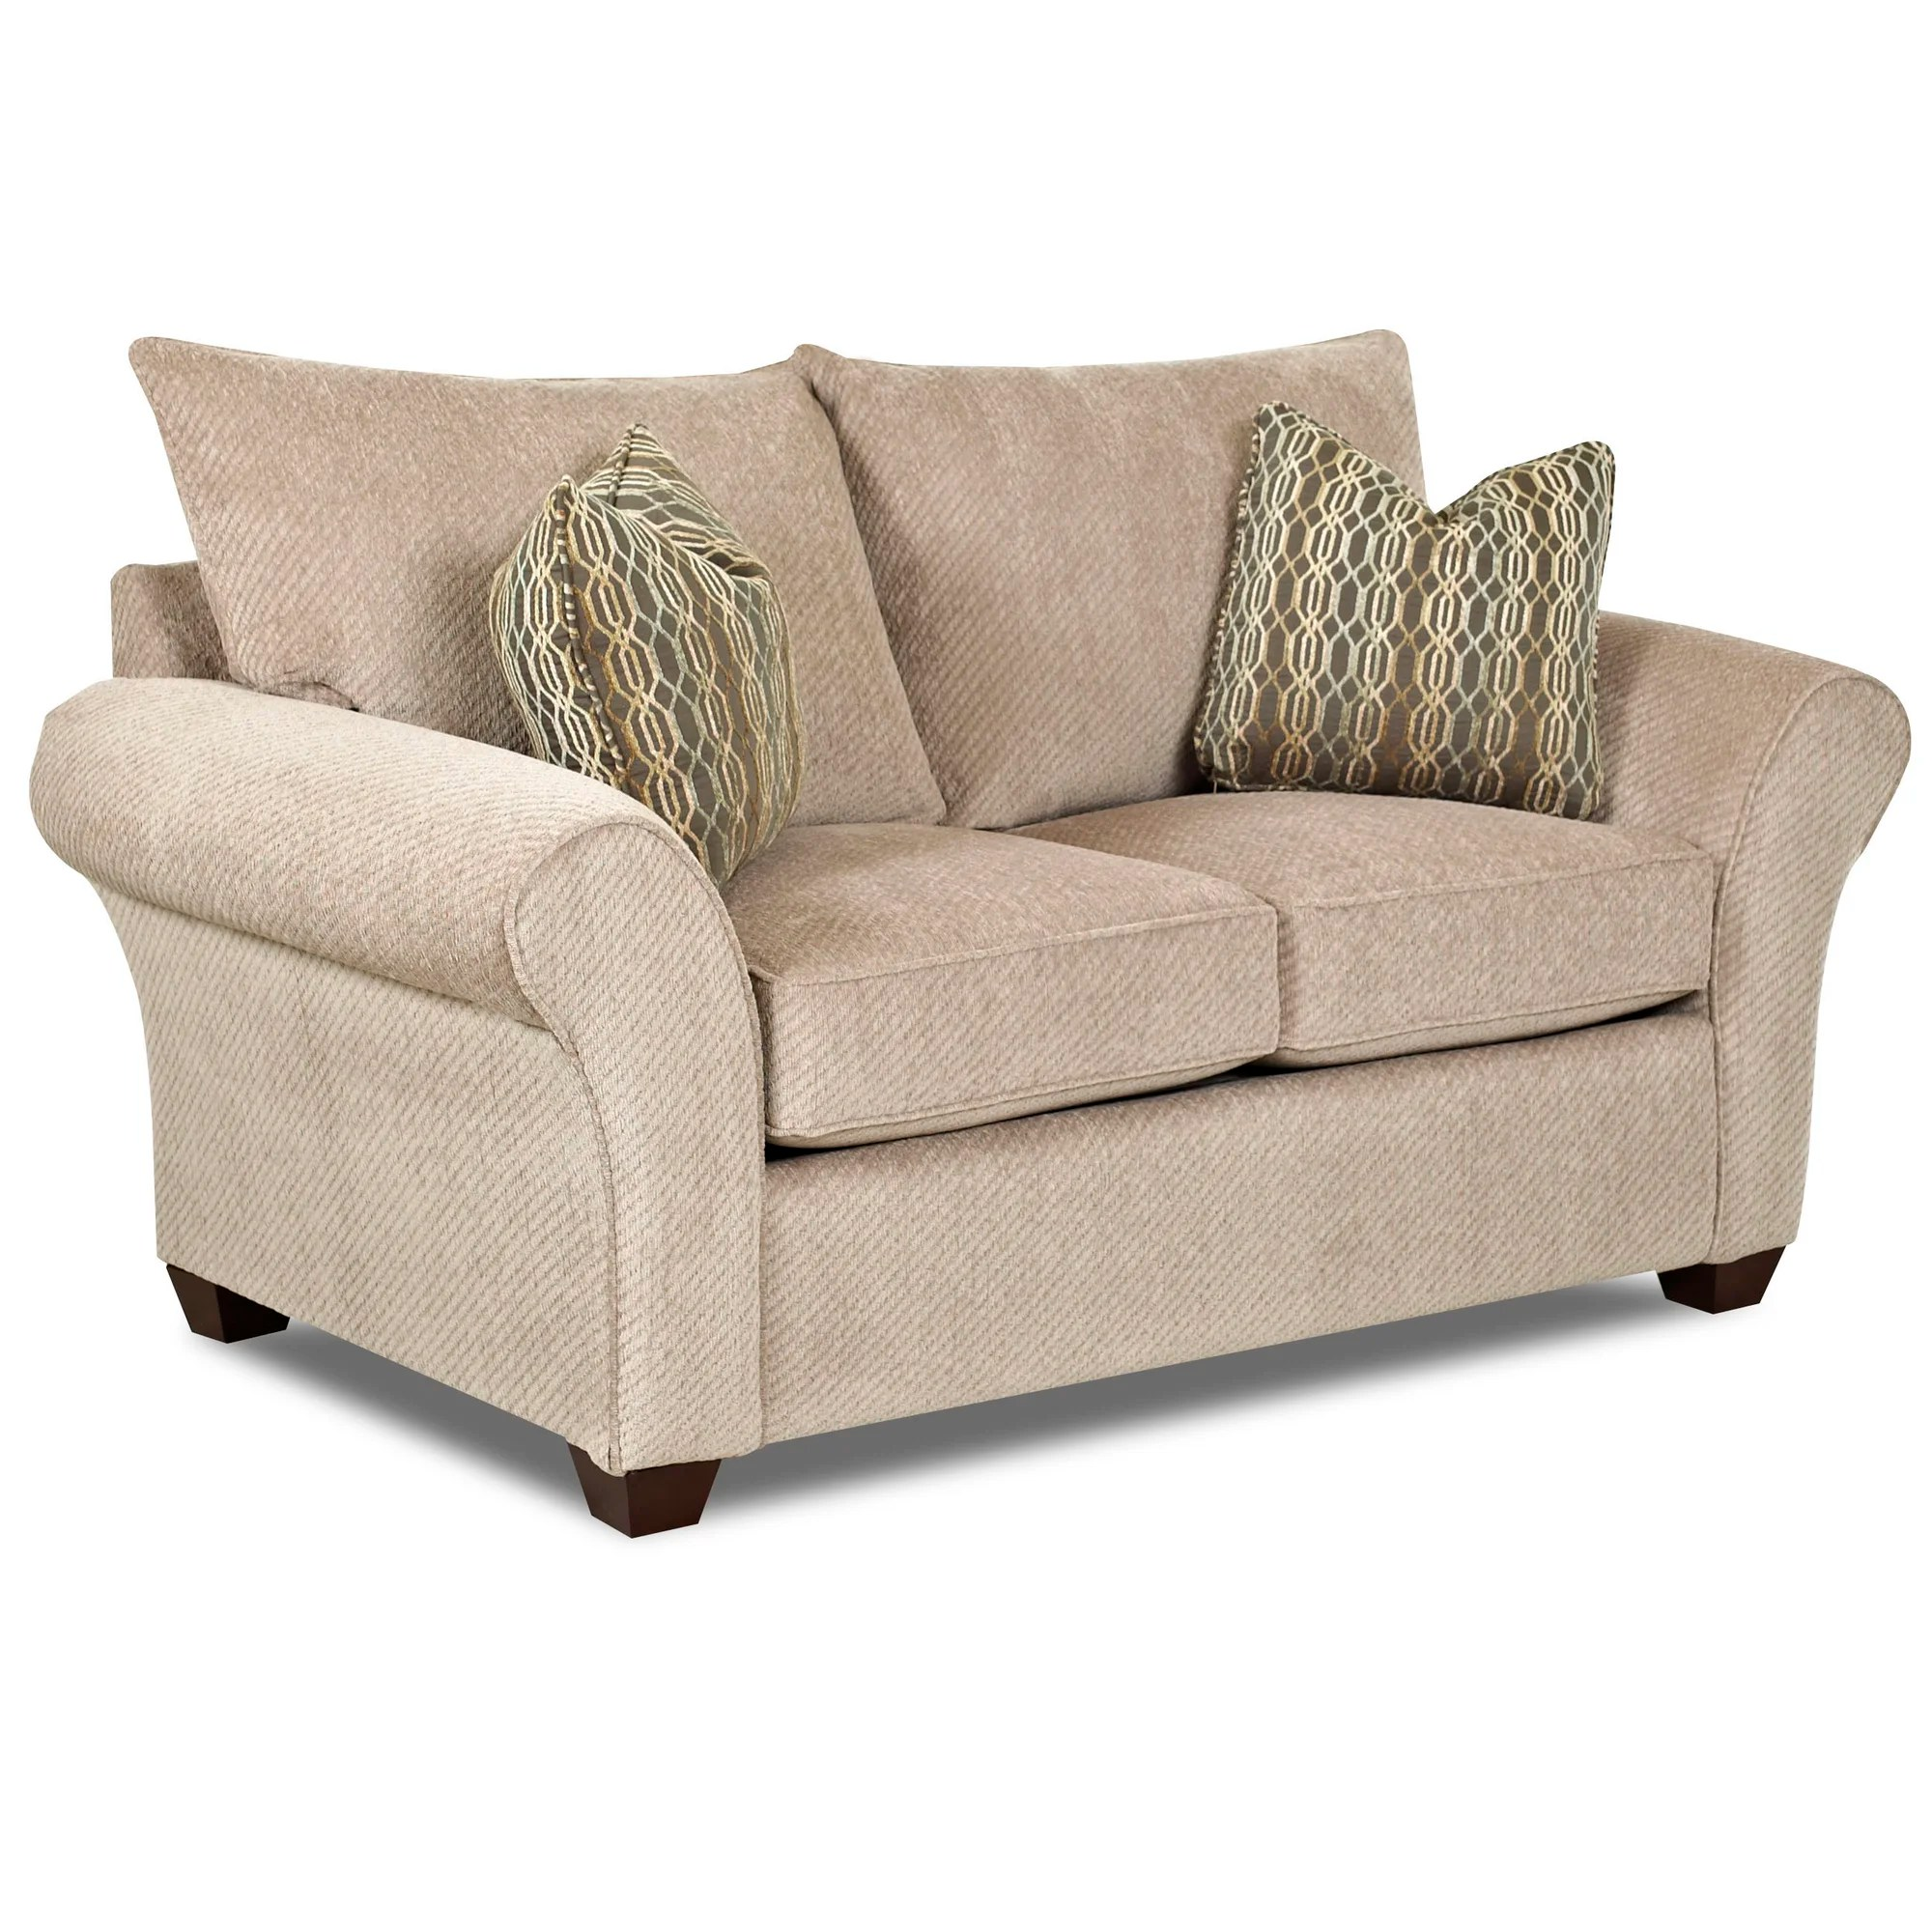 Klaussner Furniture Finn Sofa Reviews Wayfair